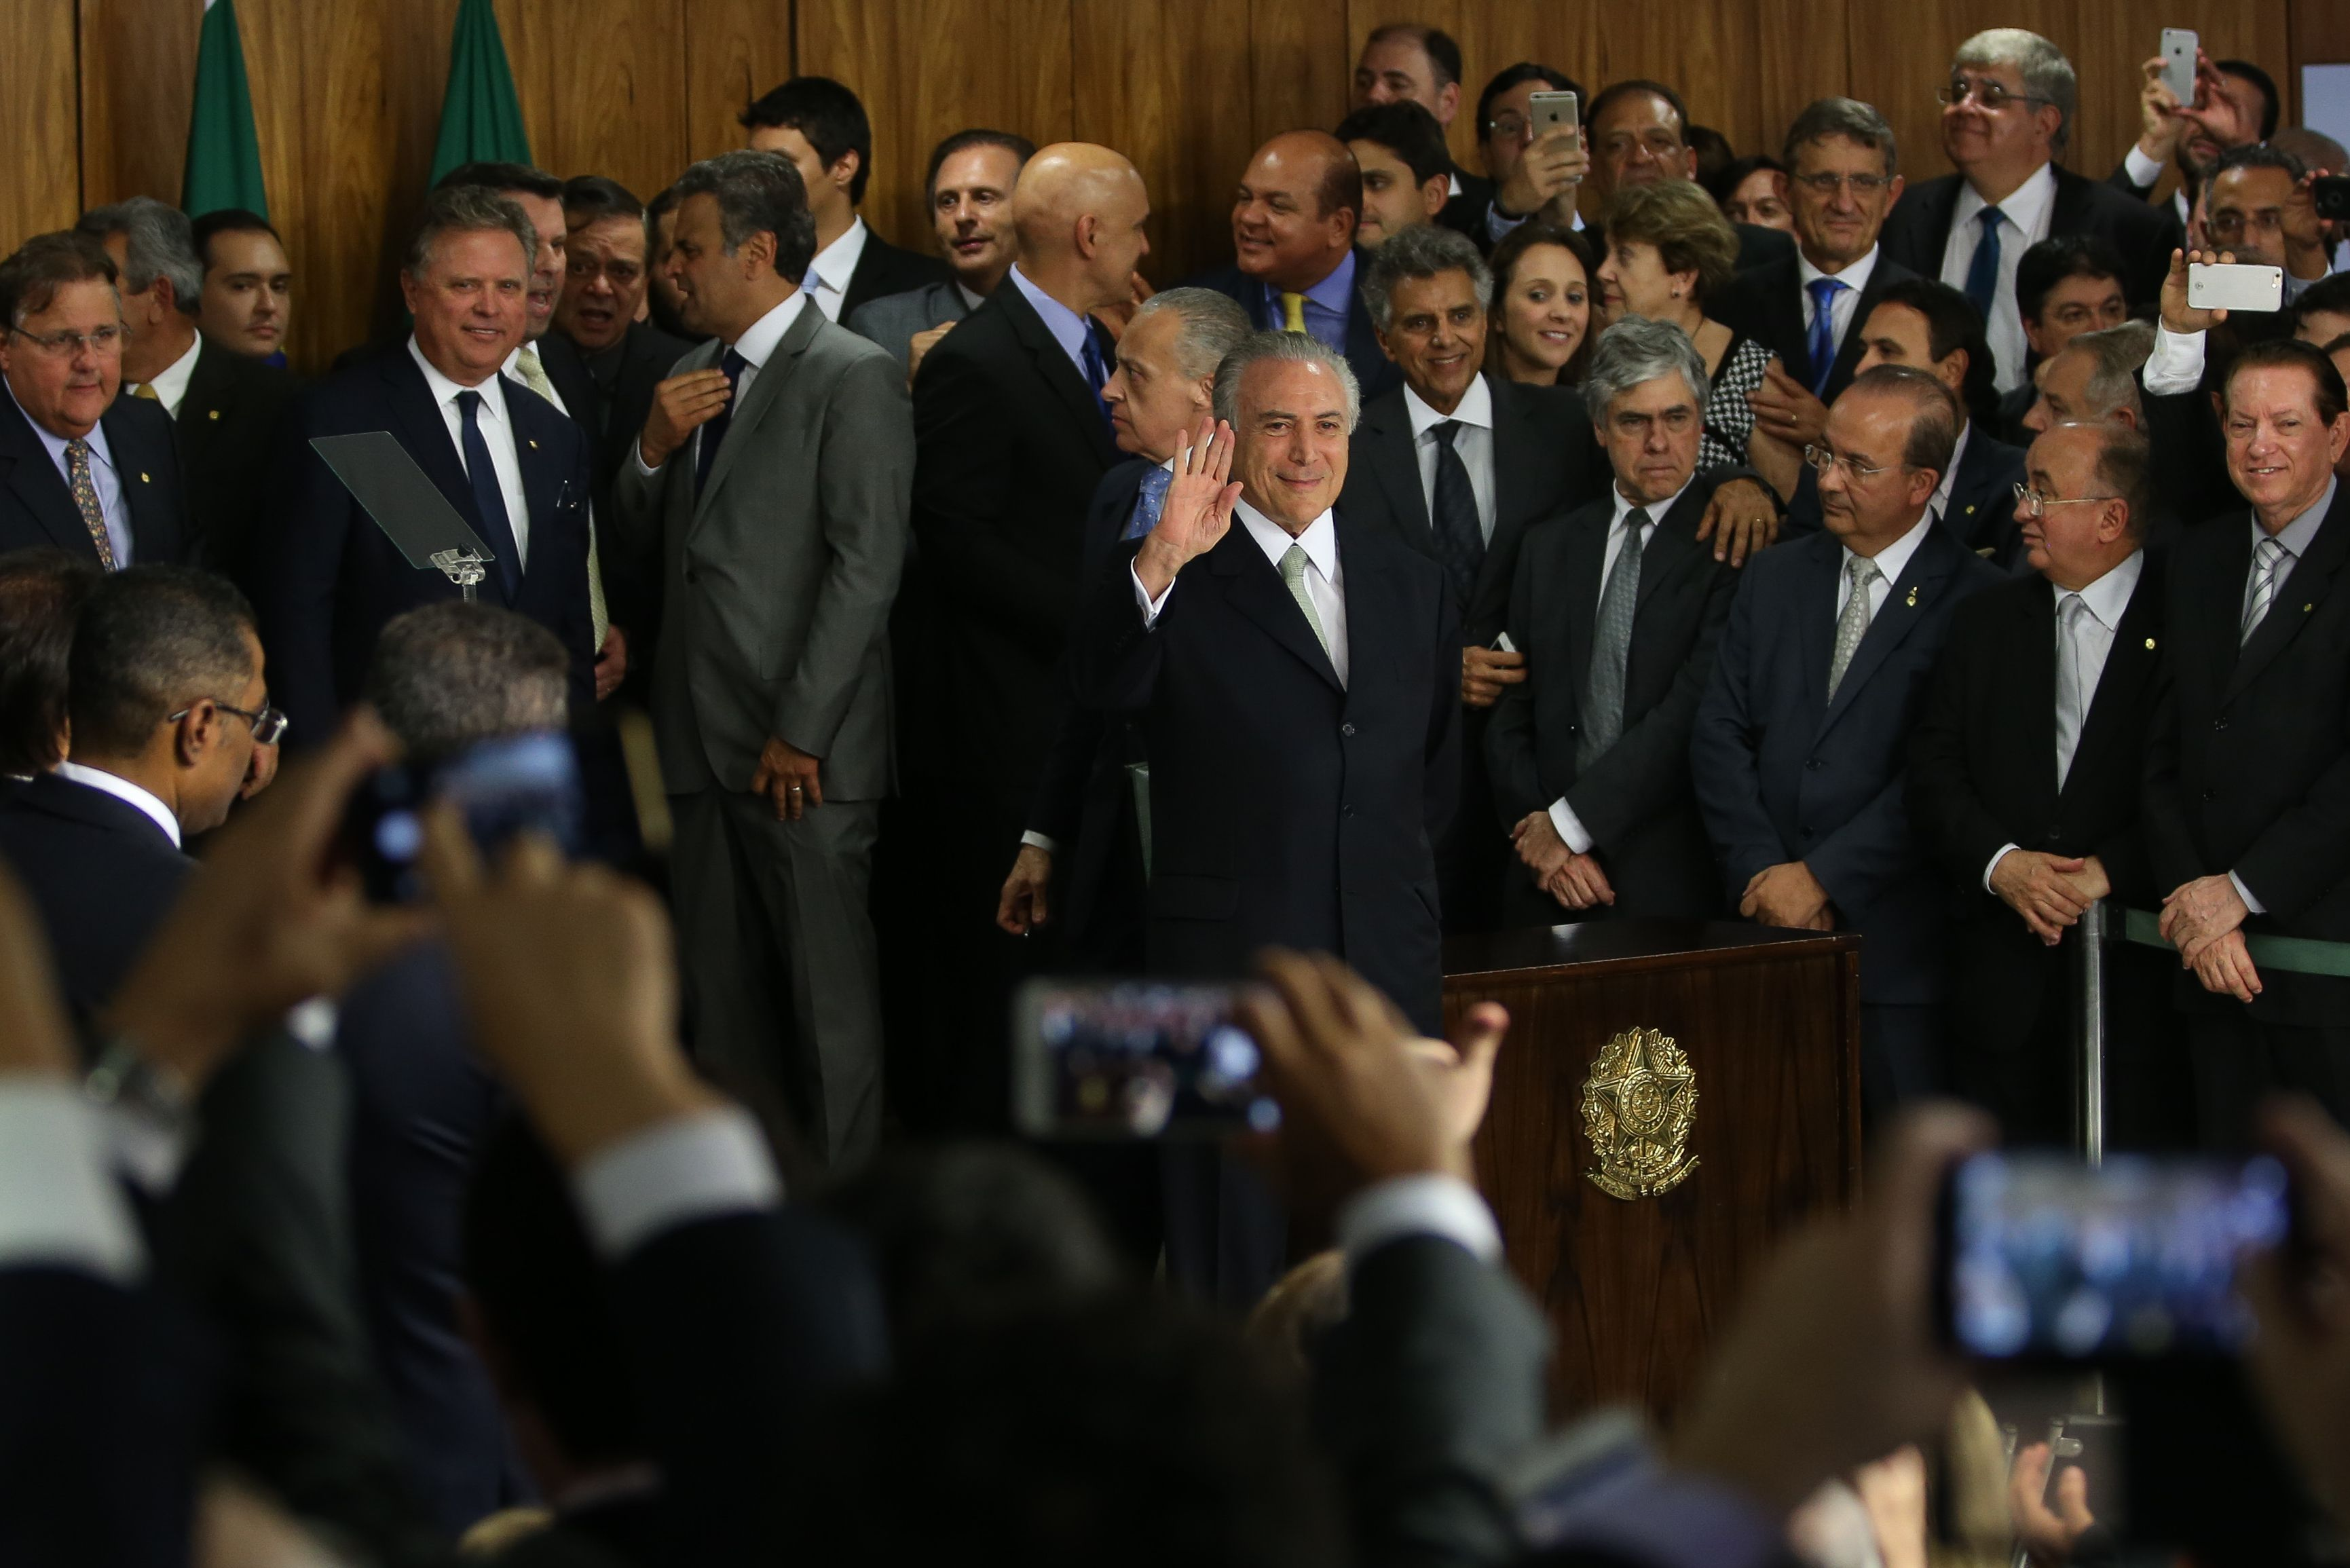 President Michel Temer at the swearing-in ceremony of new ministers. Photo by Marcello Casal Jr/Agência Brasil